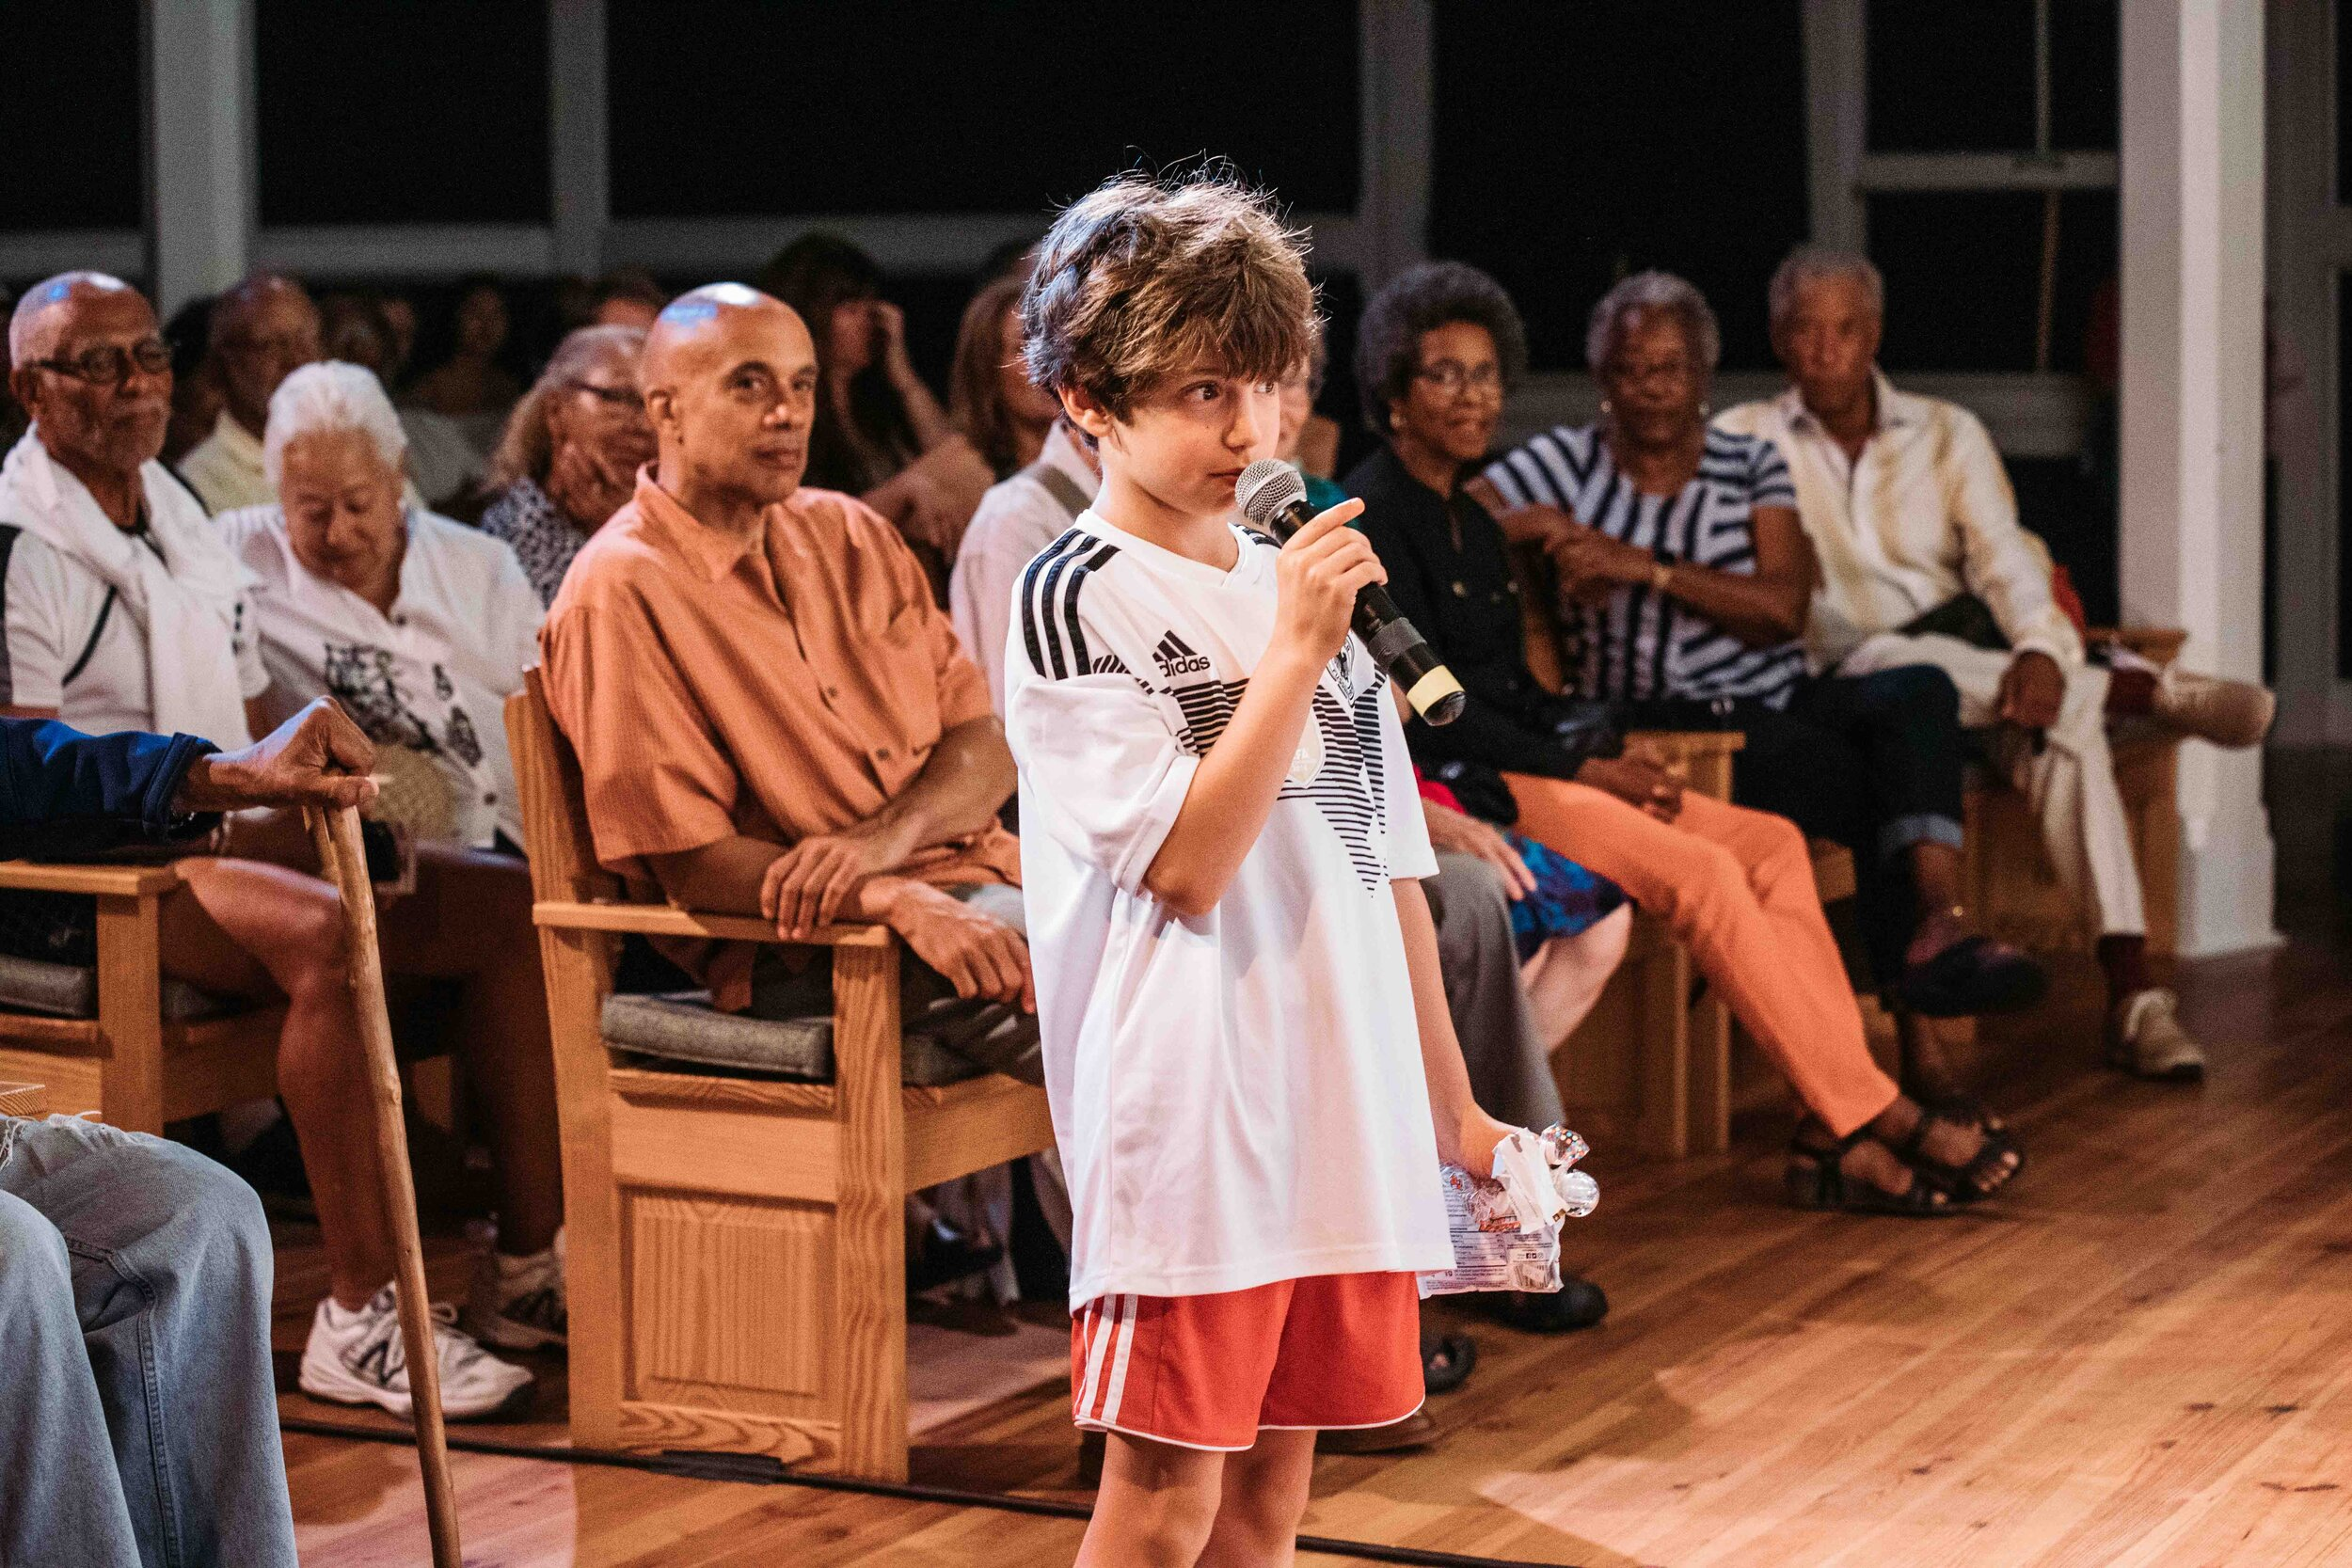 A young filmgoer asks a question during a post-film discussion. Photo by Reece Robinson.